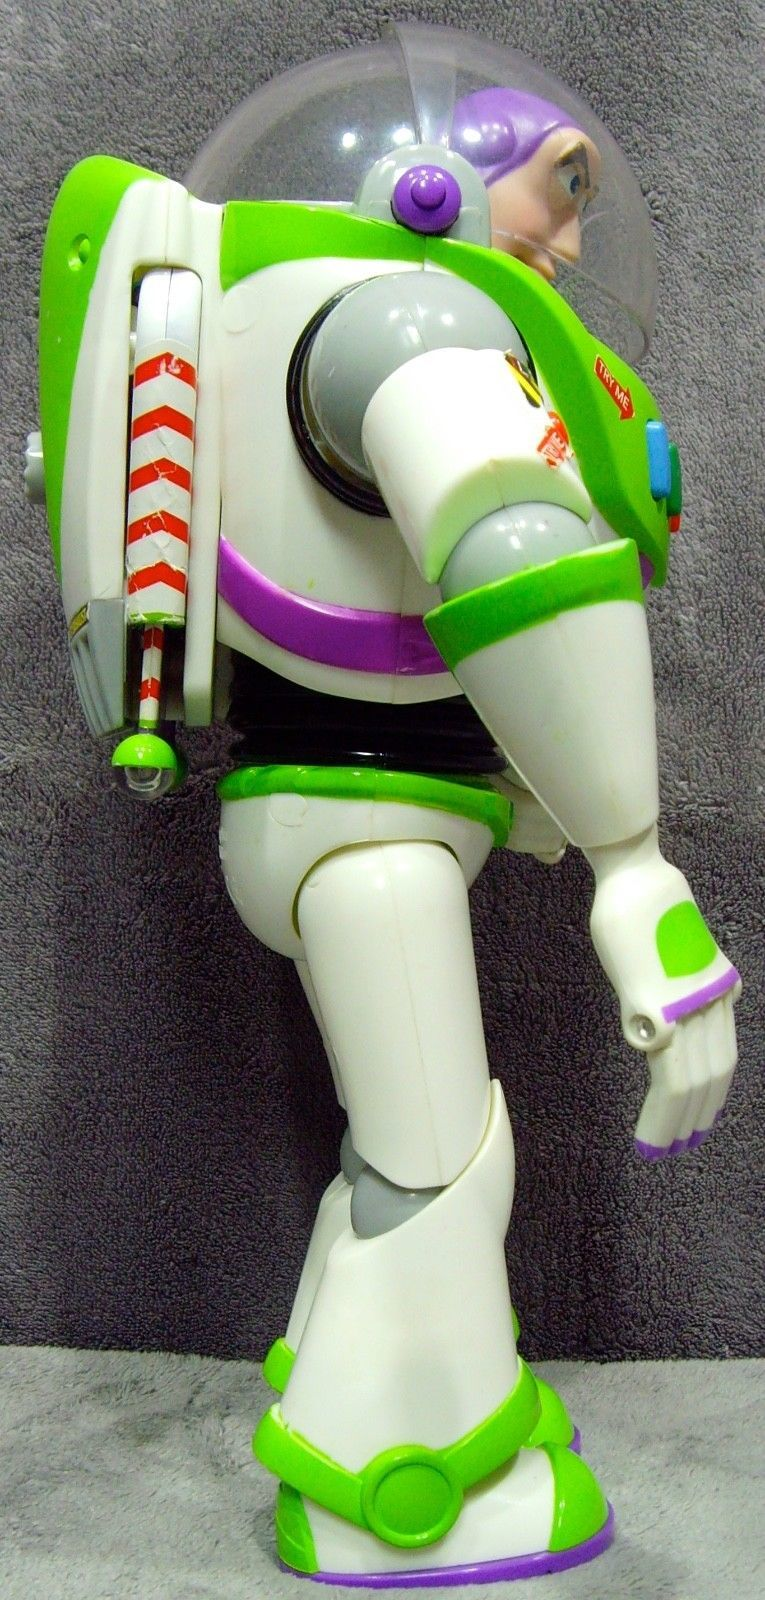 Disney/Pixar•Accessories Advanced•Talking Buzz Lightyear•12 inch Action Figure